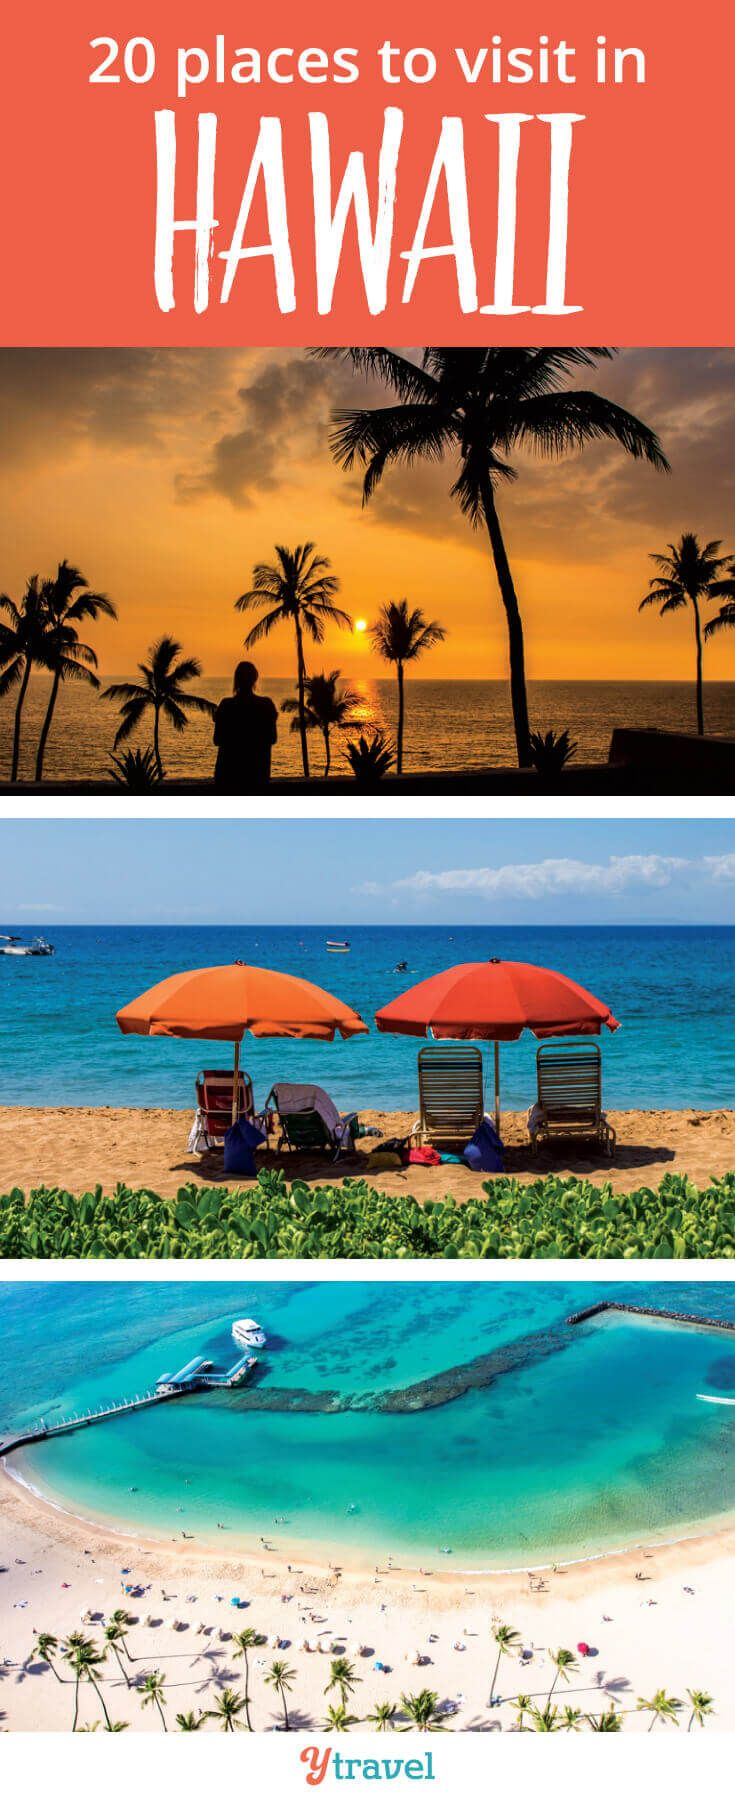 Places to visit in Hawaii. Going to Hawaii is always a good idea, especially if you want to escape the cold of winter in North America. Check out these 20 places to visit in Hawaii for your next vacation. #Hawaii #Travel #Oahu